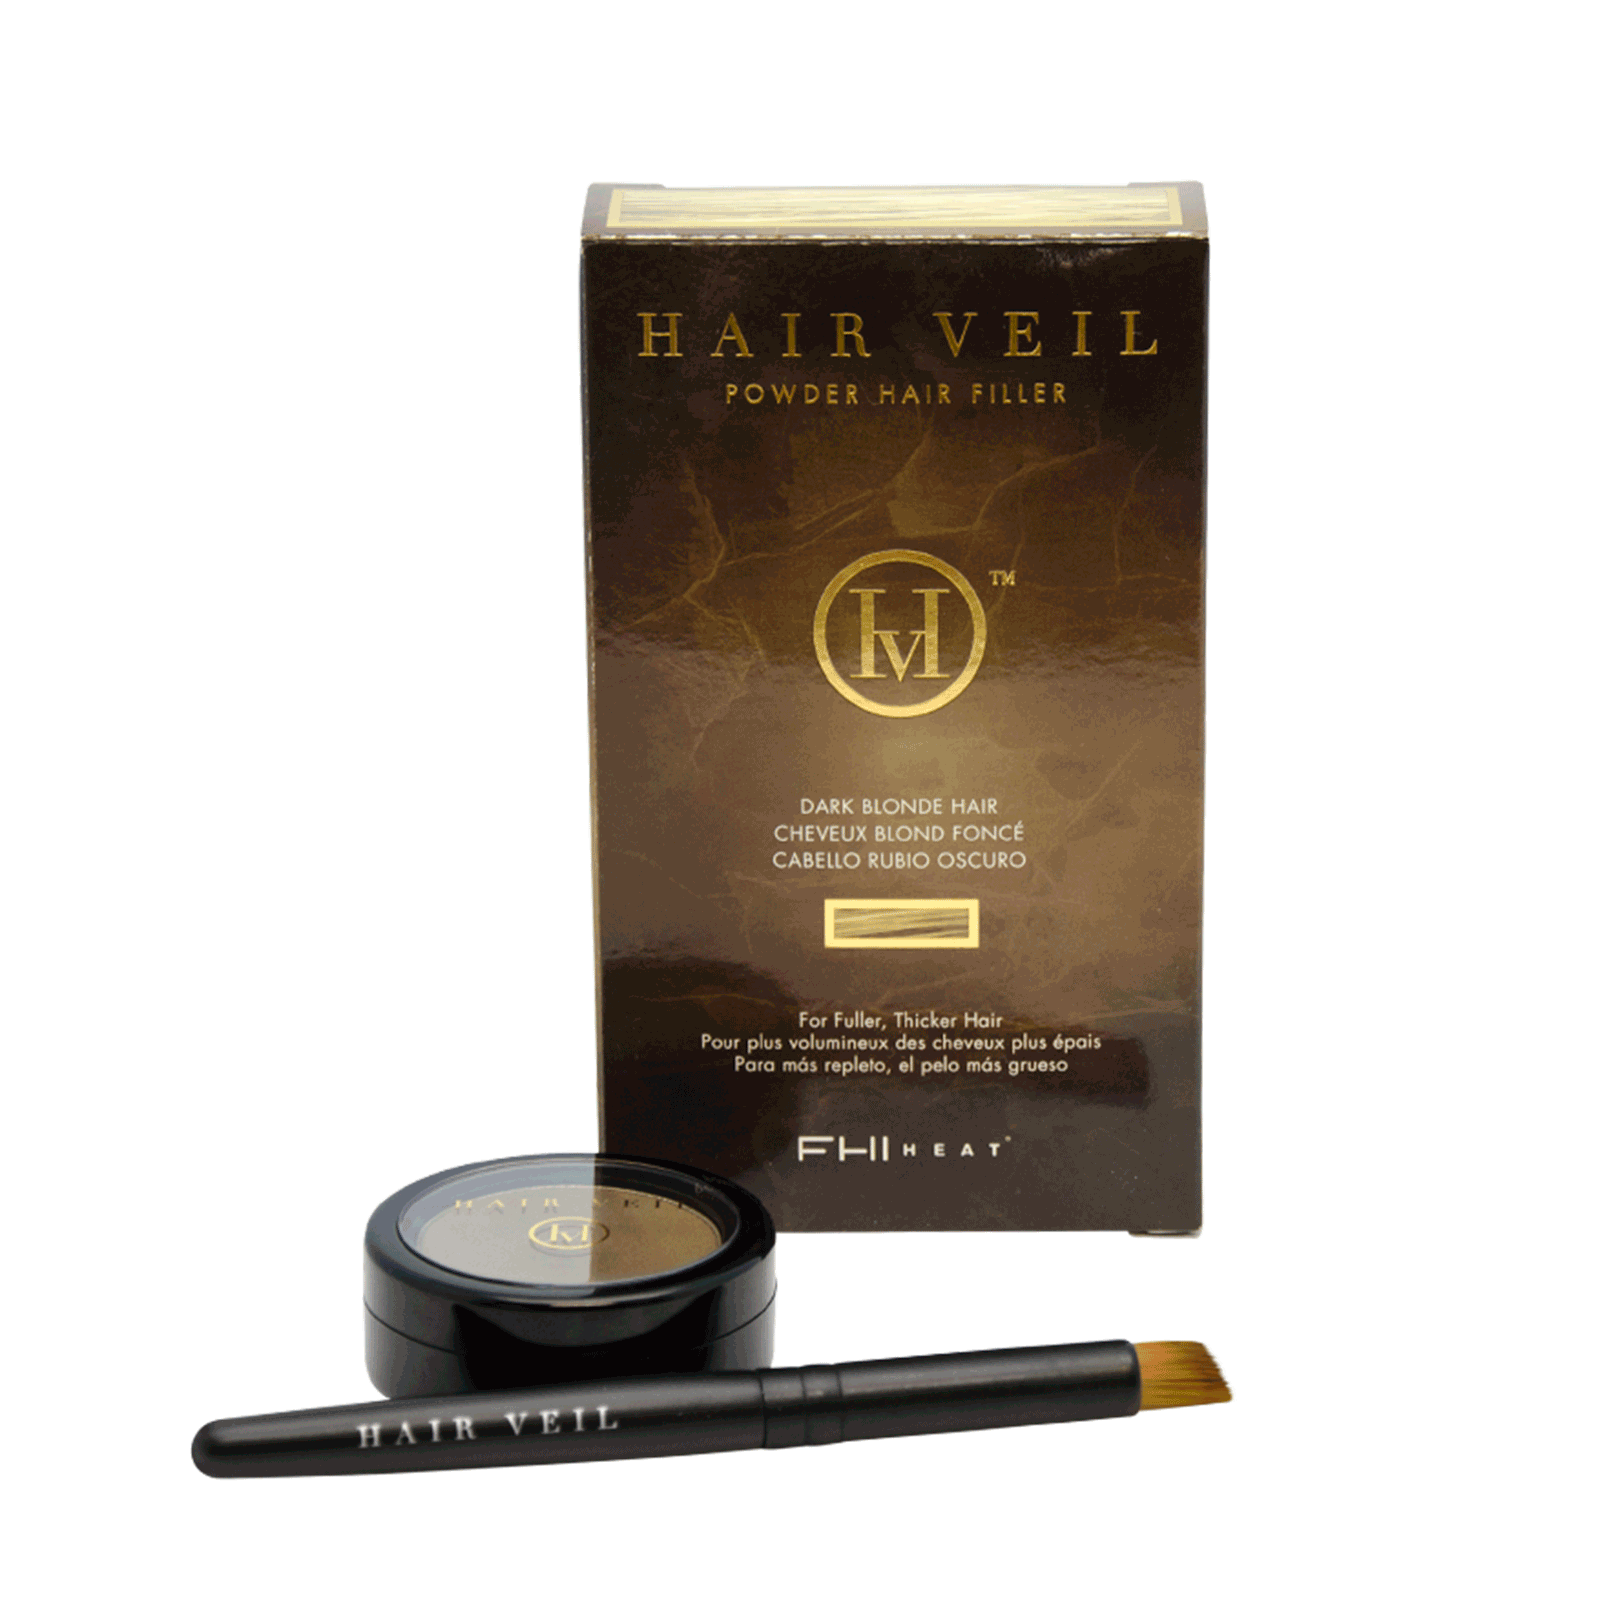 Hair Veil Powder Hair Filler - Dark Blonde